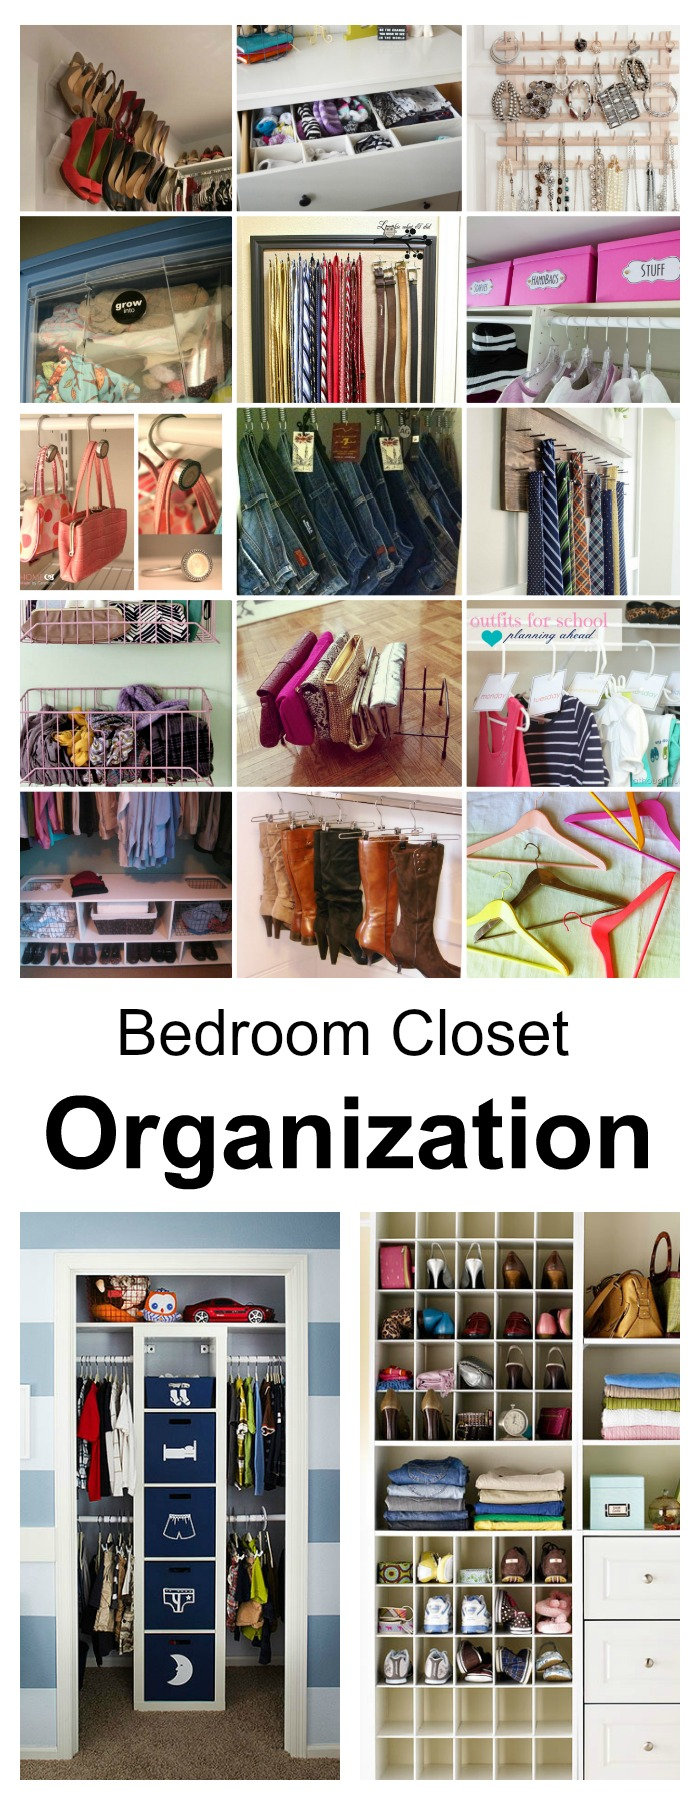 Bedroom-Closet-Organization-Ideas-Pin